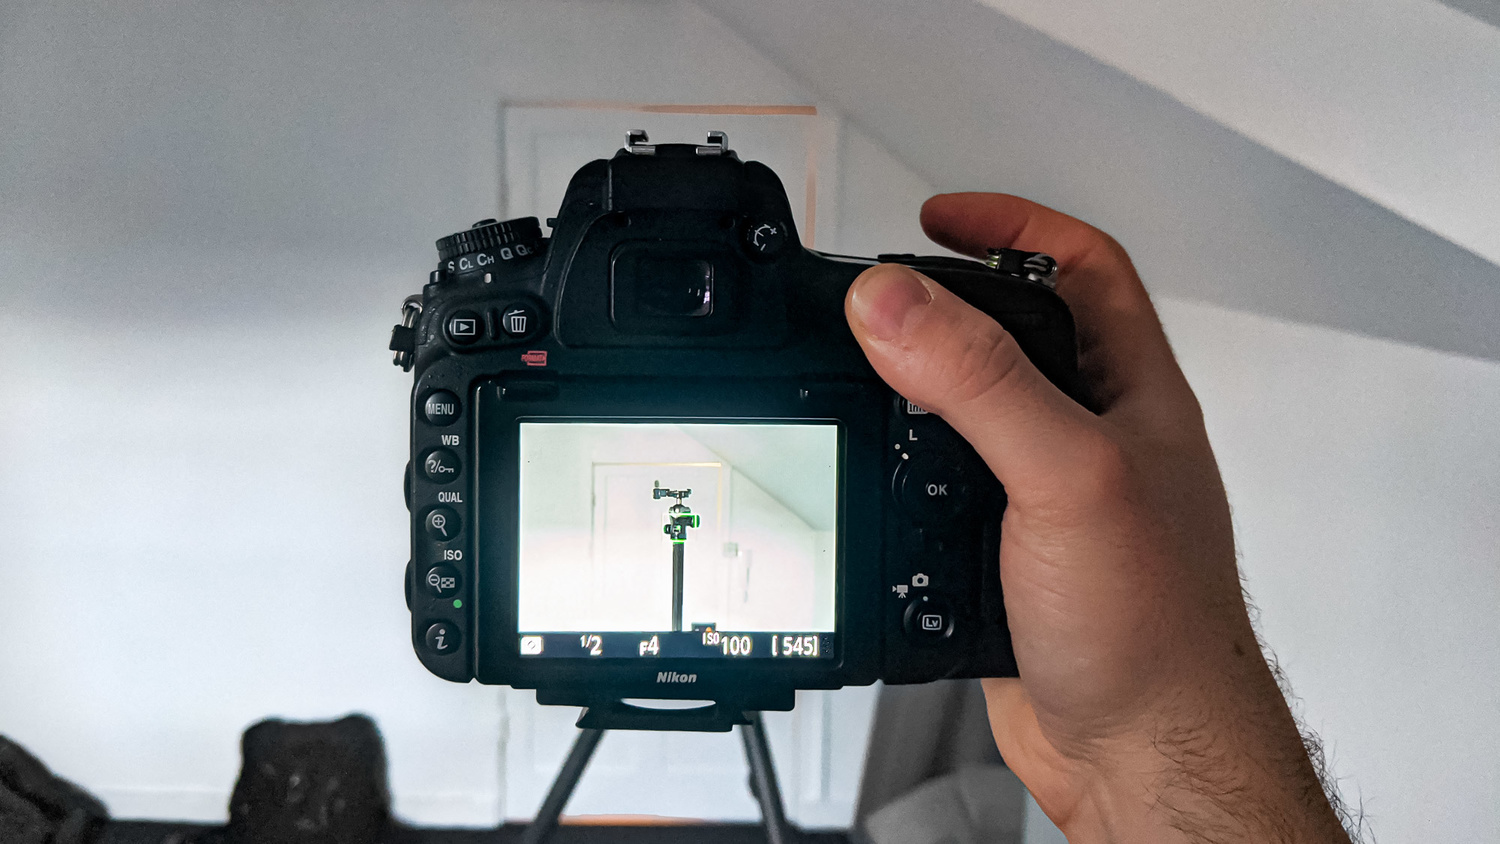 Focus up on the tripod